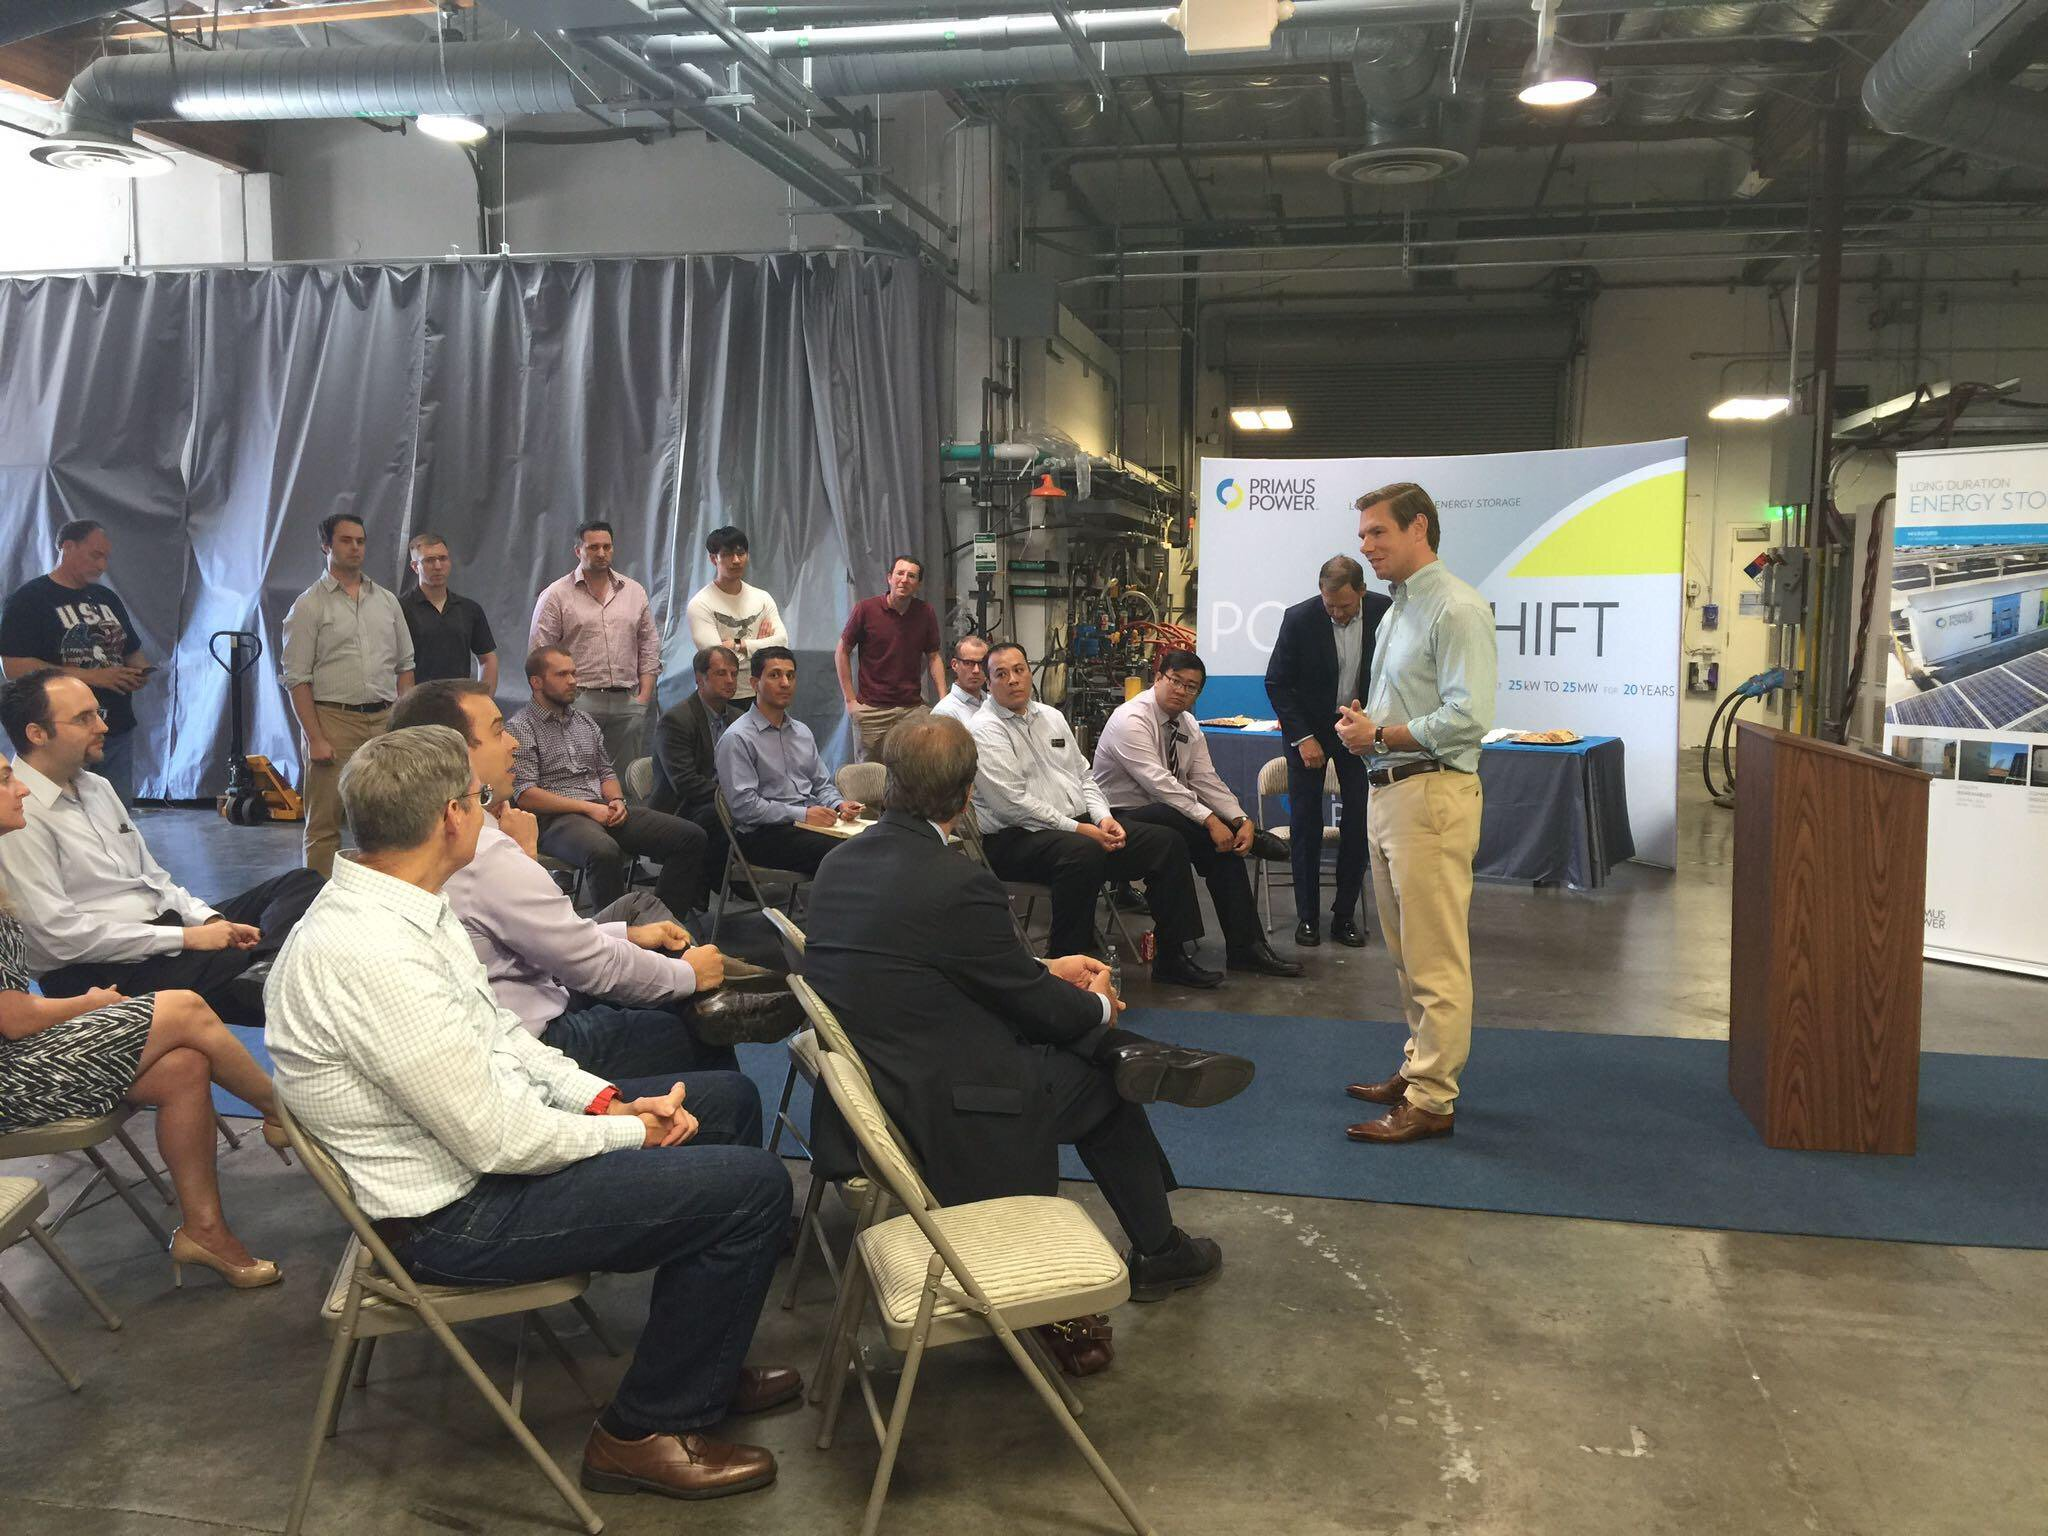 Great visits/town hall yesterday with @Primus_Power, @AlphabetEnergy & Siluria Technologies in Hayward. #CA15proud! https://t.co/LWfSZseiTm